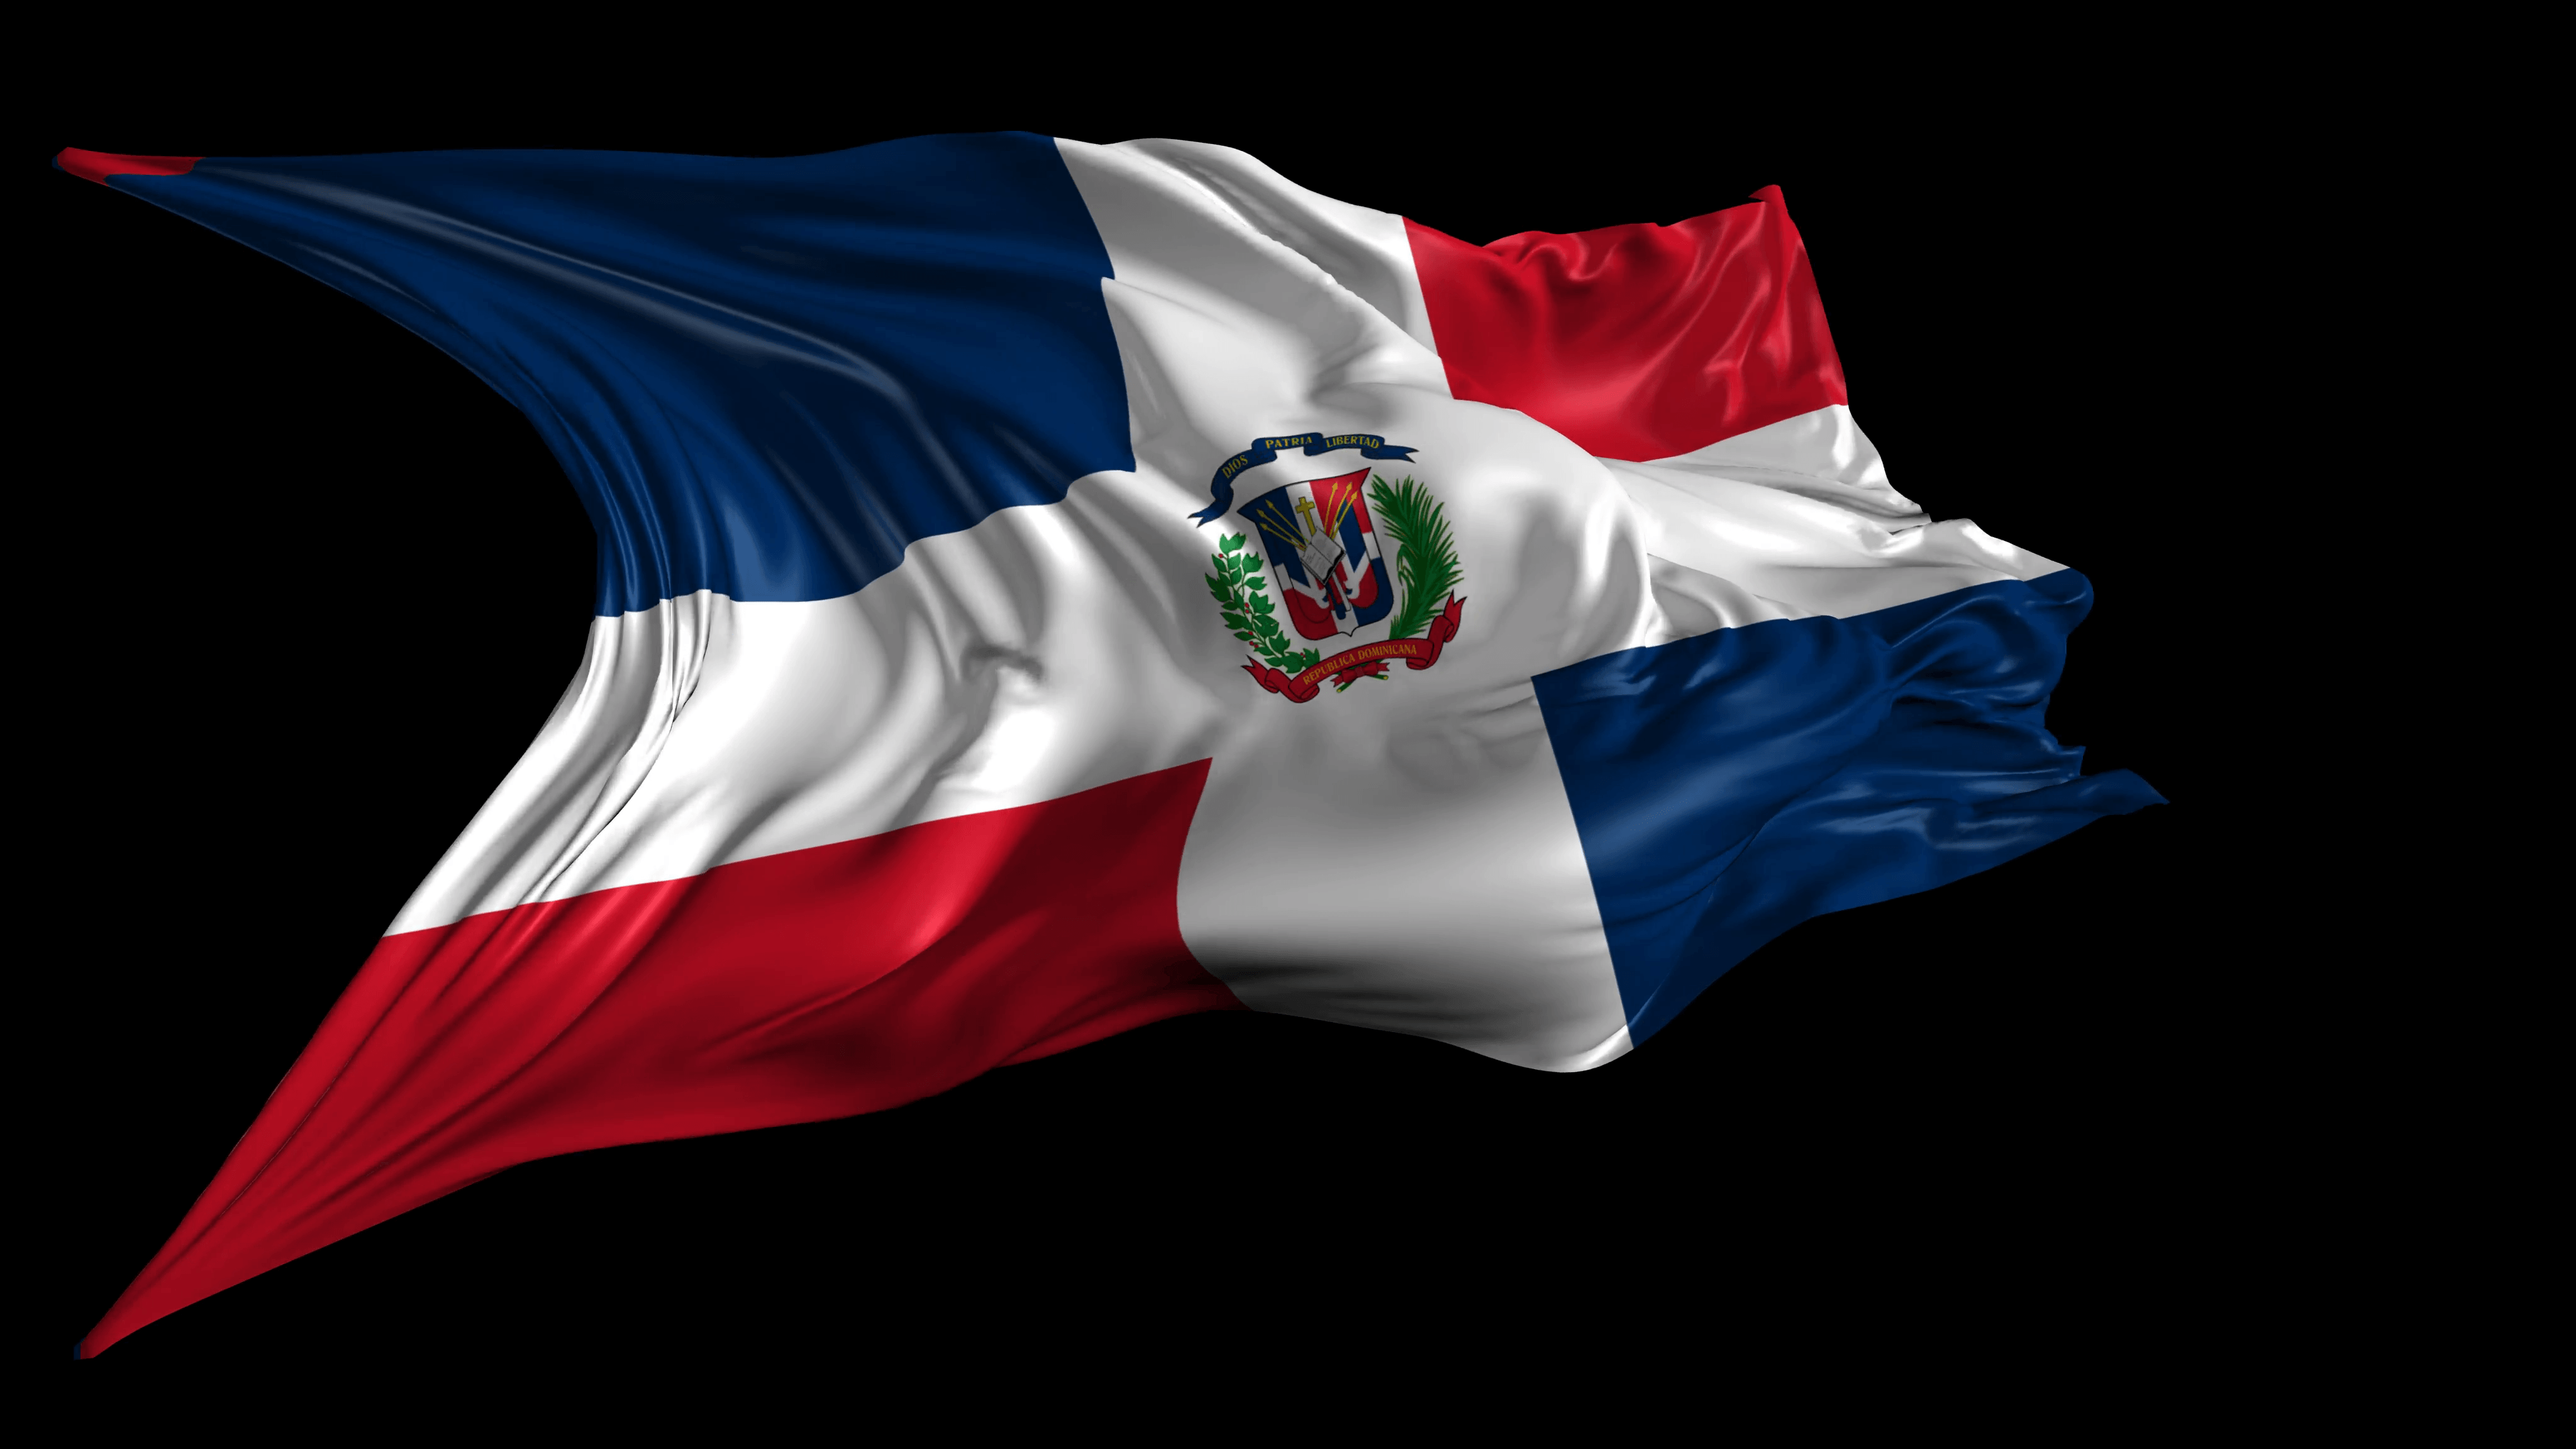 Wallpaper Dominican Republic Flag ✓ Gadget and PC Wallpaper